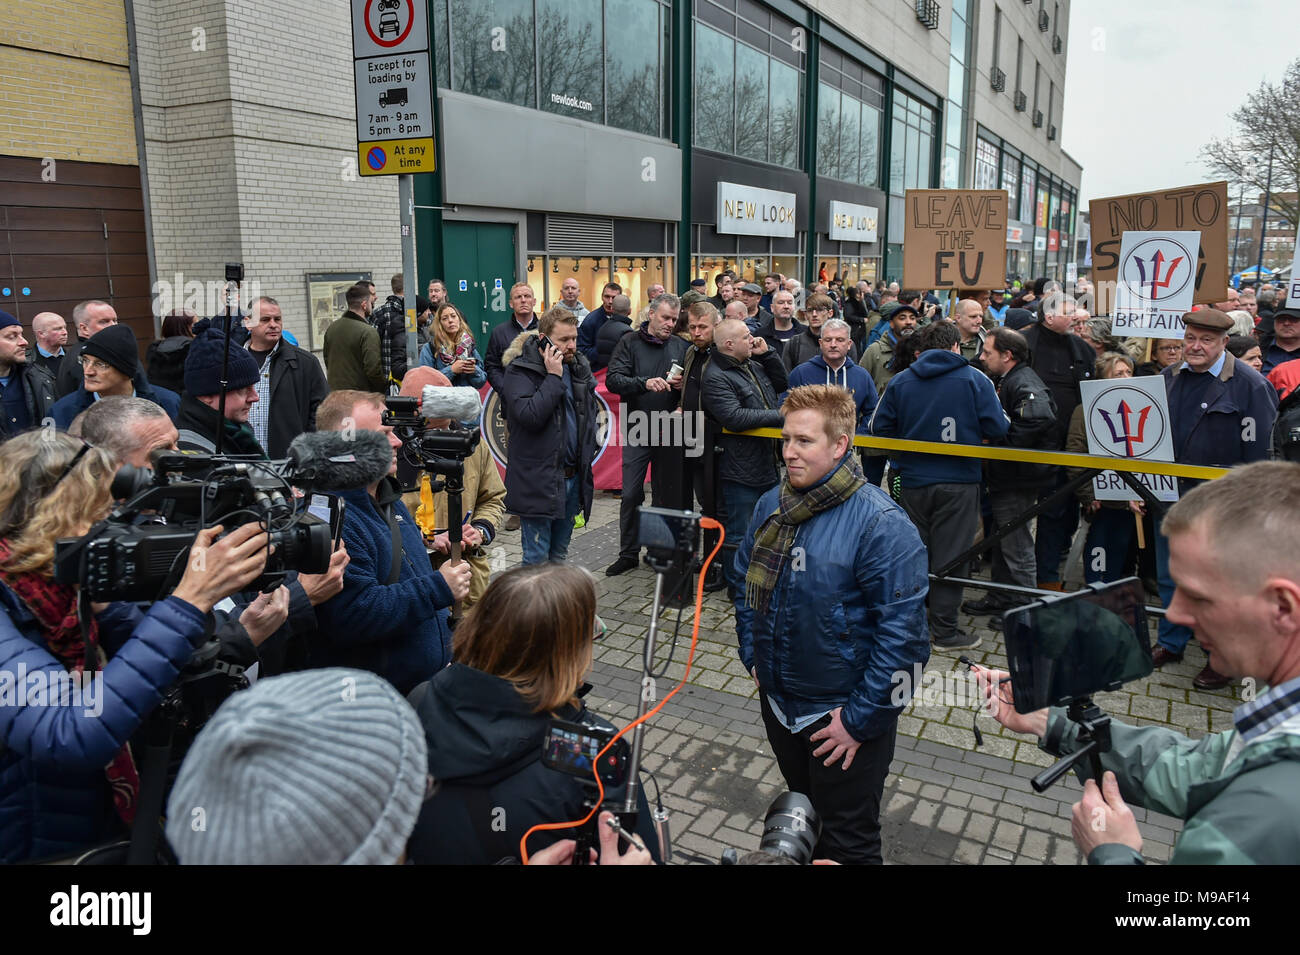 Birmingham, United Kingdom. 24 March 2018. People have gathered for the 'Football Lads Alliance' (FLA) demonstration in Birmingham. There were speeches from John Mieghan, Anne Marie Waters, Luke Nash-Jones and Aline Moraes. After a short march the group dispersed in Edgbaston St. Pictured: John Mieghan  Credit: Peter Manning/Alamy Live News - Stock Image